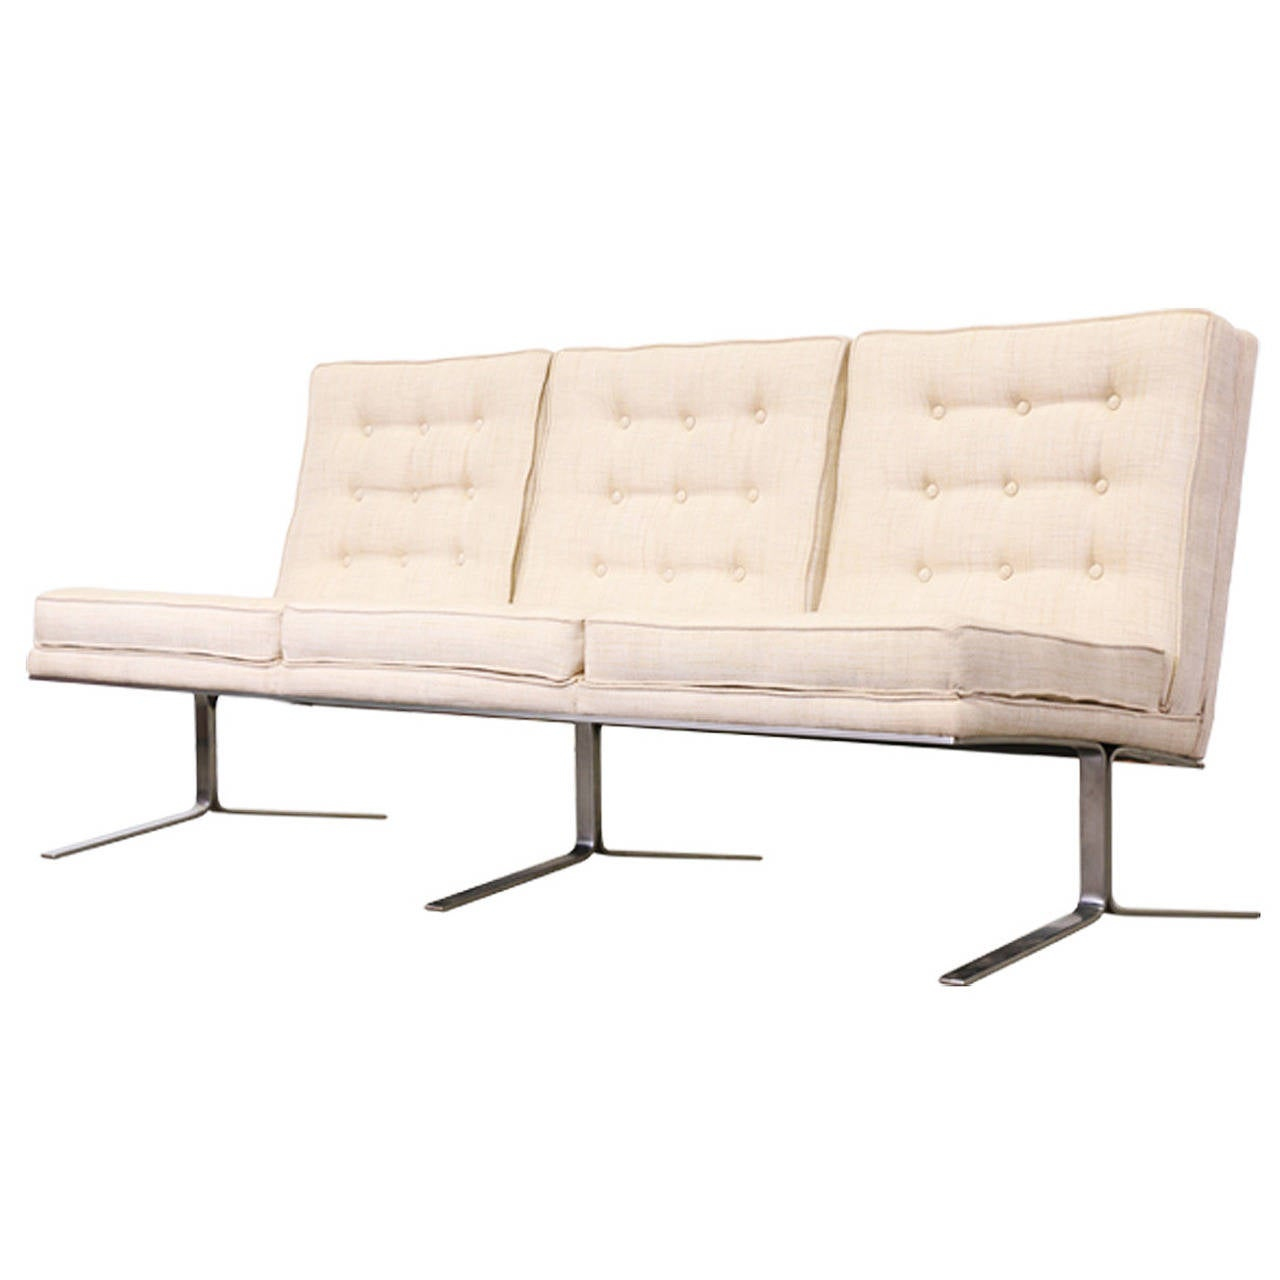 florence knoll style tufted sofa w steel legs at 1stdibs. Black Bedroom Furniture Sets. Home Design Ideas